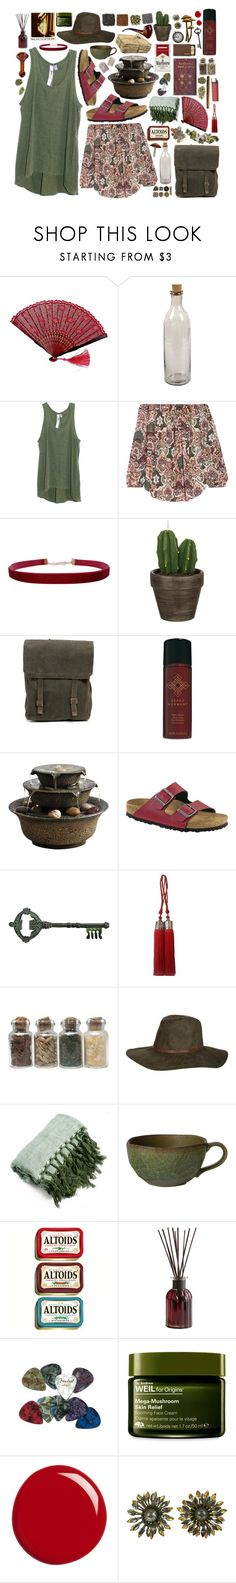 """""""Paprika"""" by wisteriablossom ❤ liked on Polyvore featuring NKUKU, Wilt, Haute Hippie, Humble Chic, John Lewis, Serge Normant, Homedics, Birkenstock, Pier 1 Imports and ...Lost"""